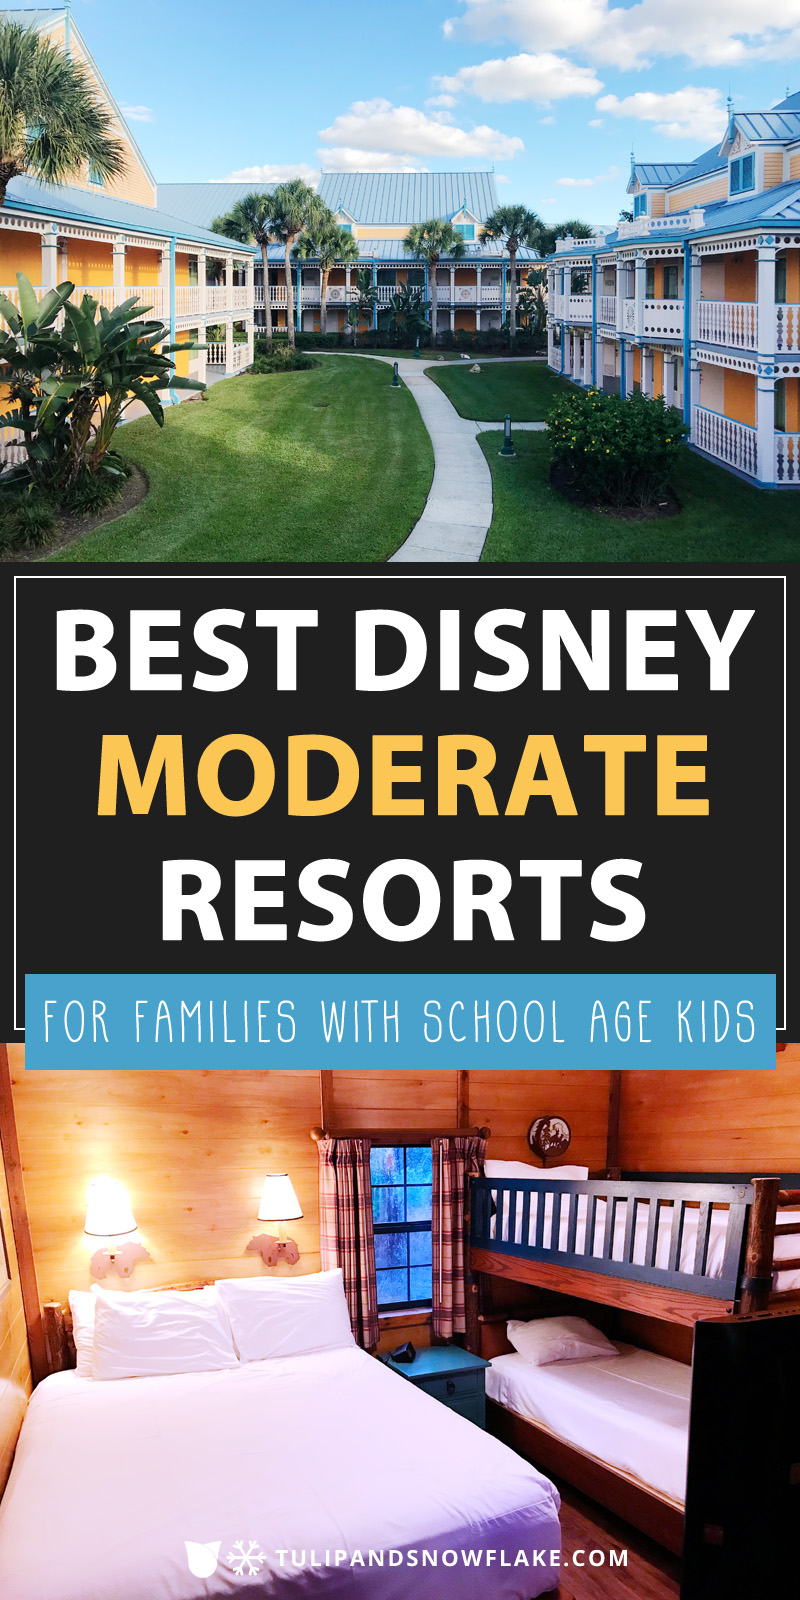 Best Disney moderate resorts for families with school age kids